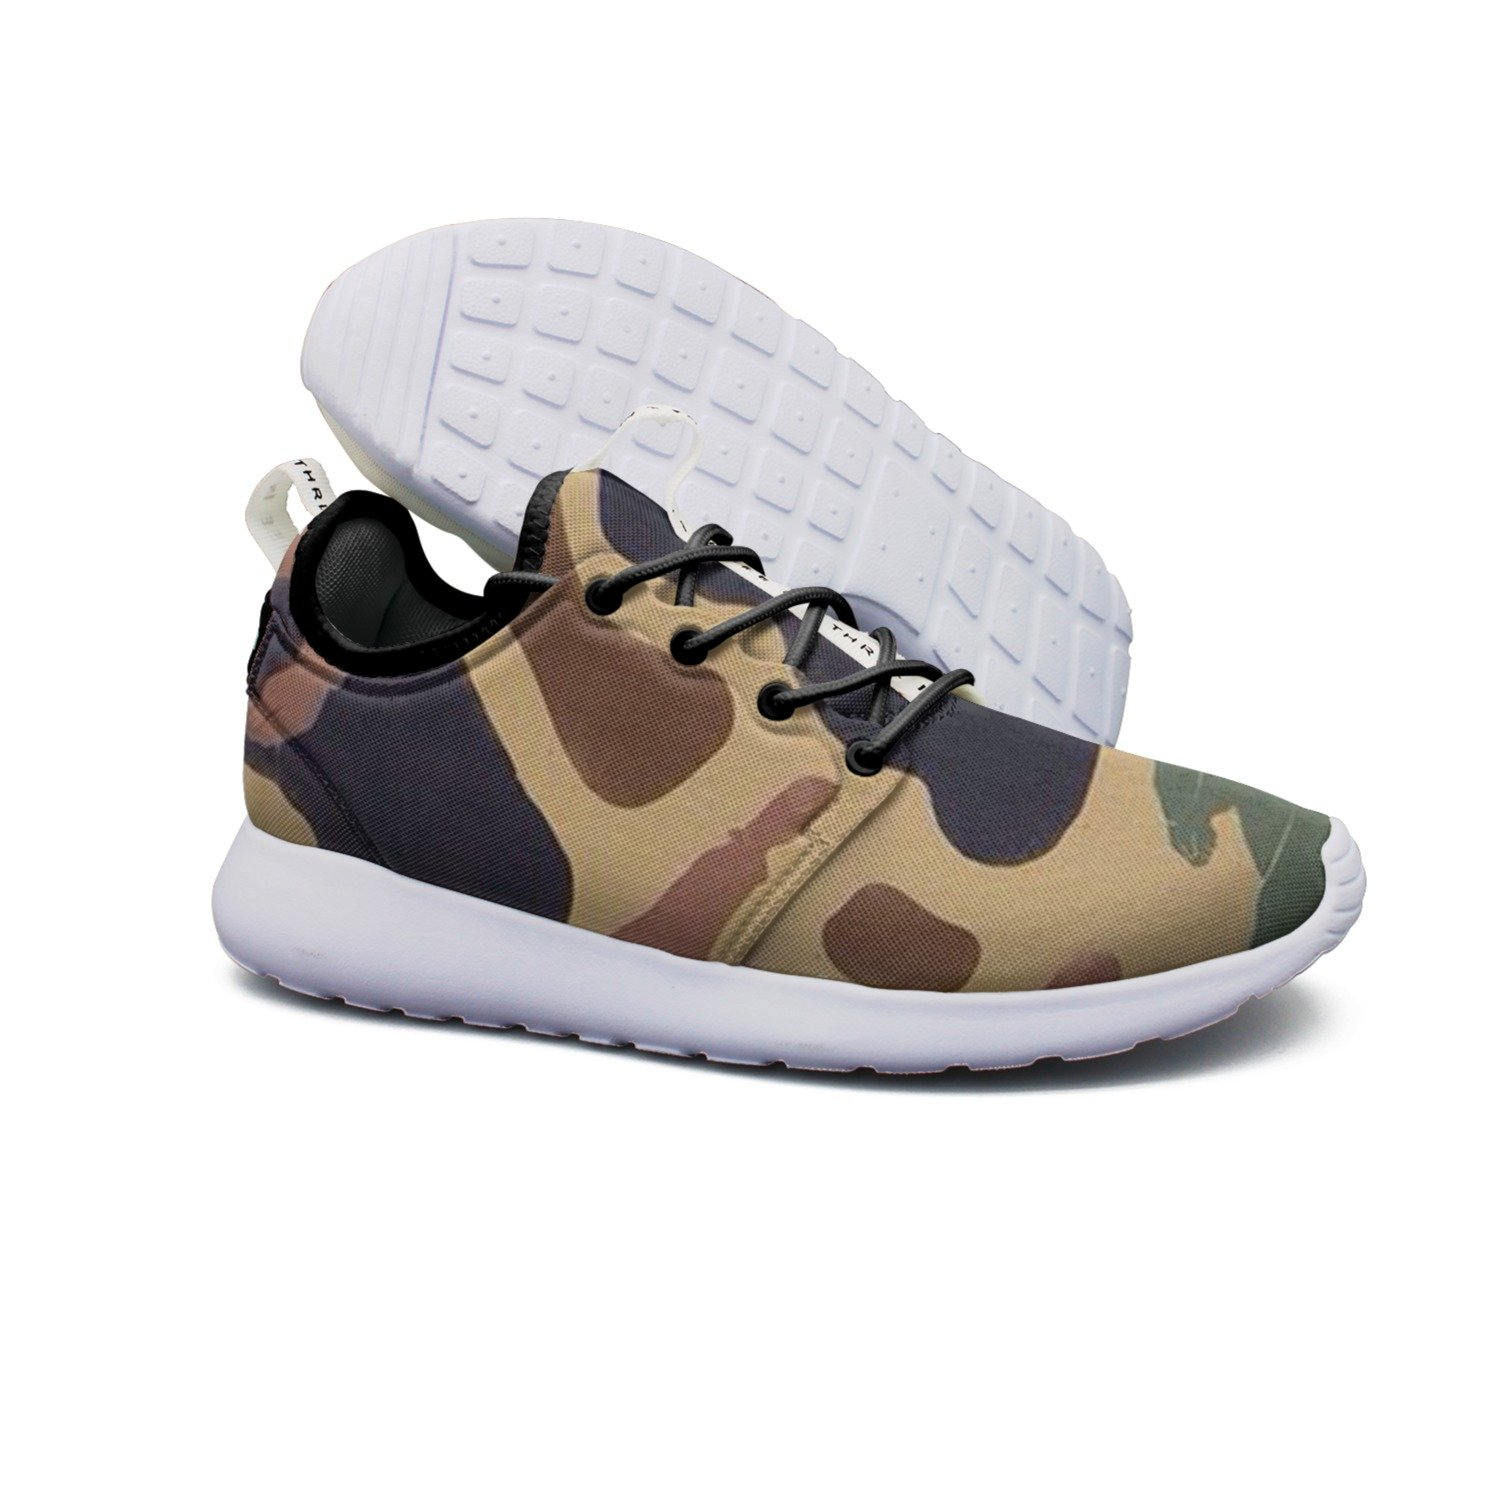 Lightweight Shoe Brown Camouflage Breathable Mesh Running Shoes